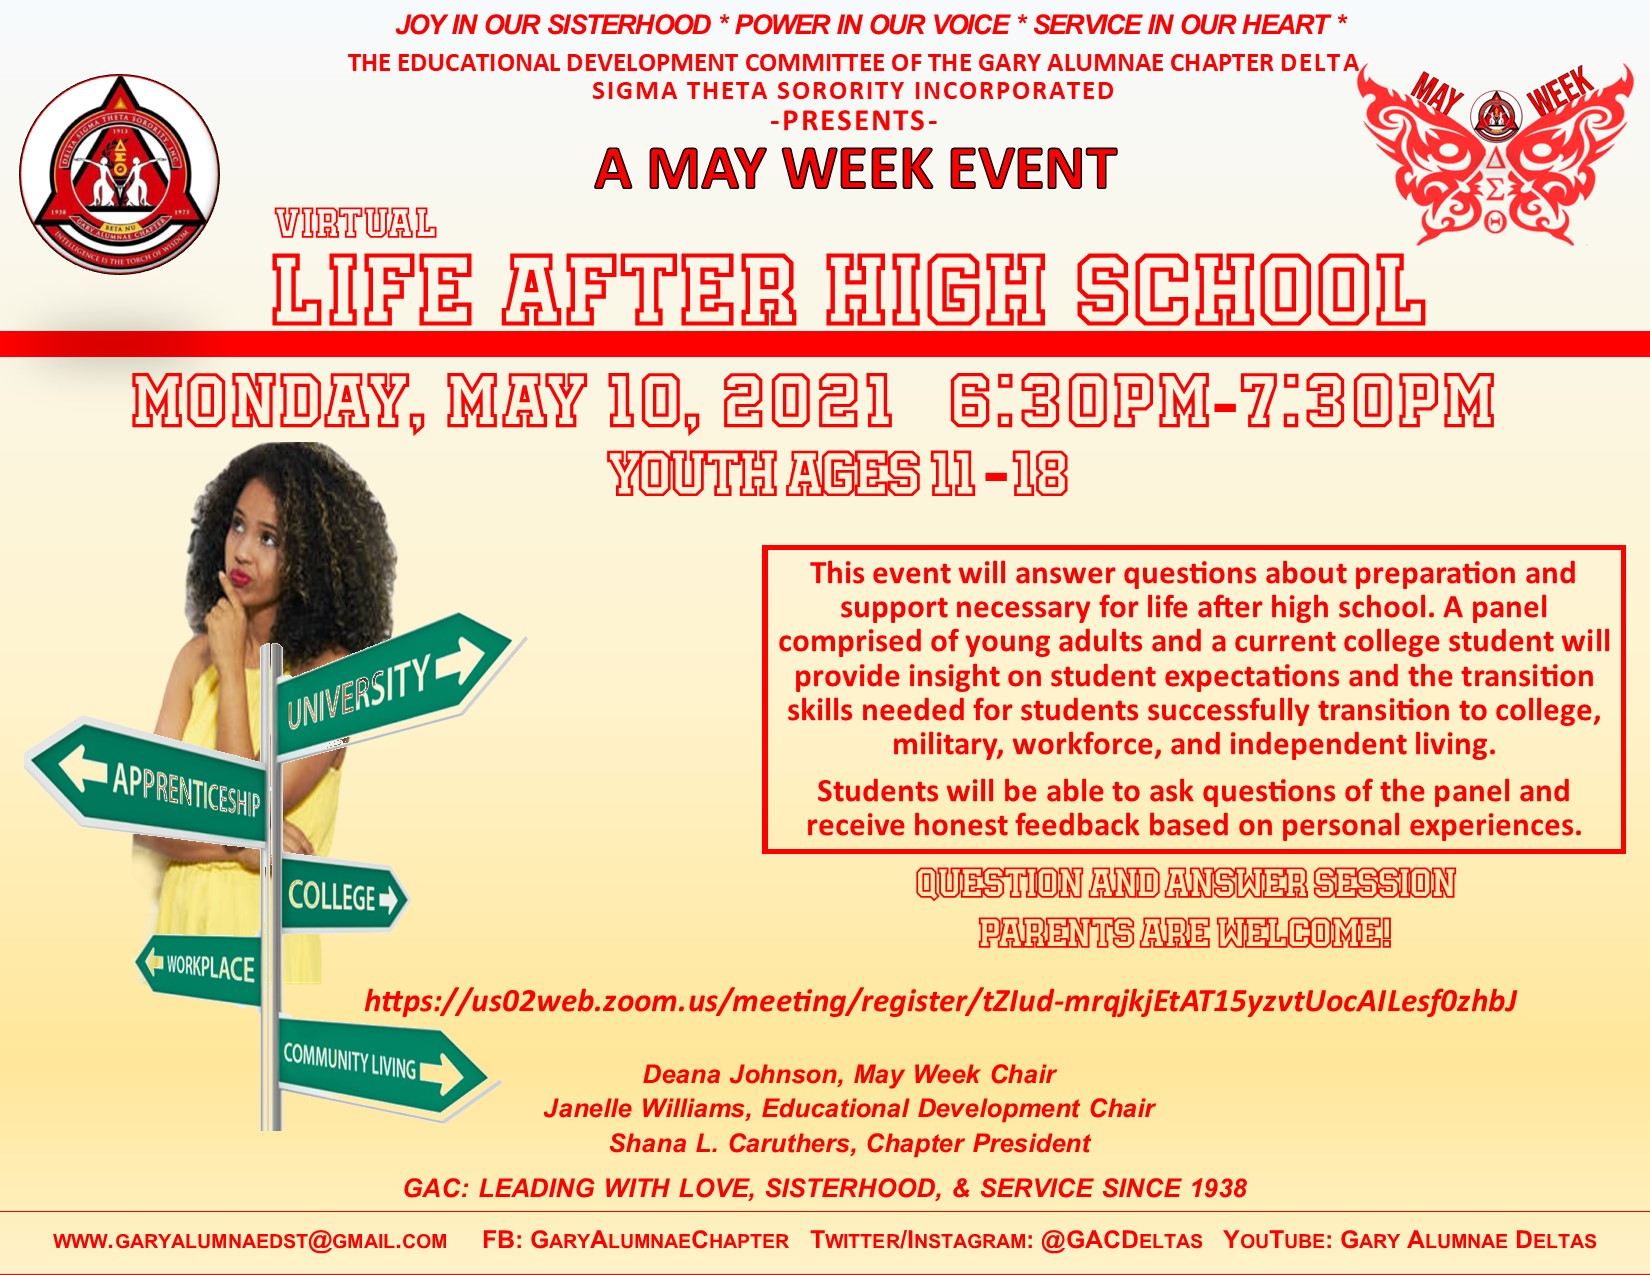 MAY WEEK- LIFE AFTER HIGH SCHOOL (MONDAY) CLICK THE FLYER